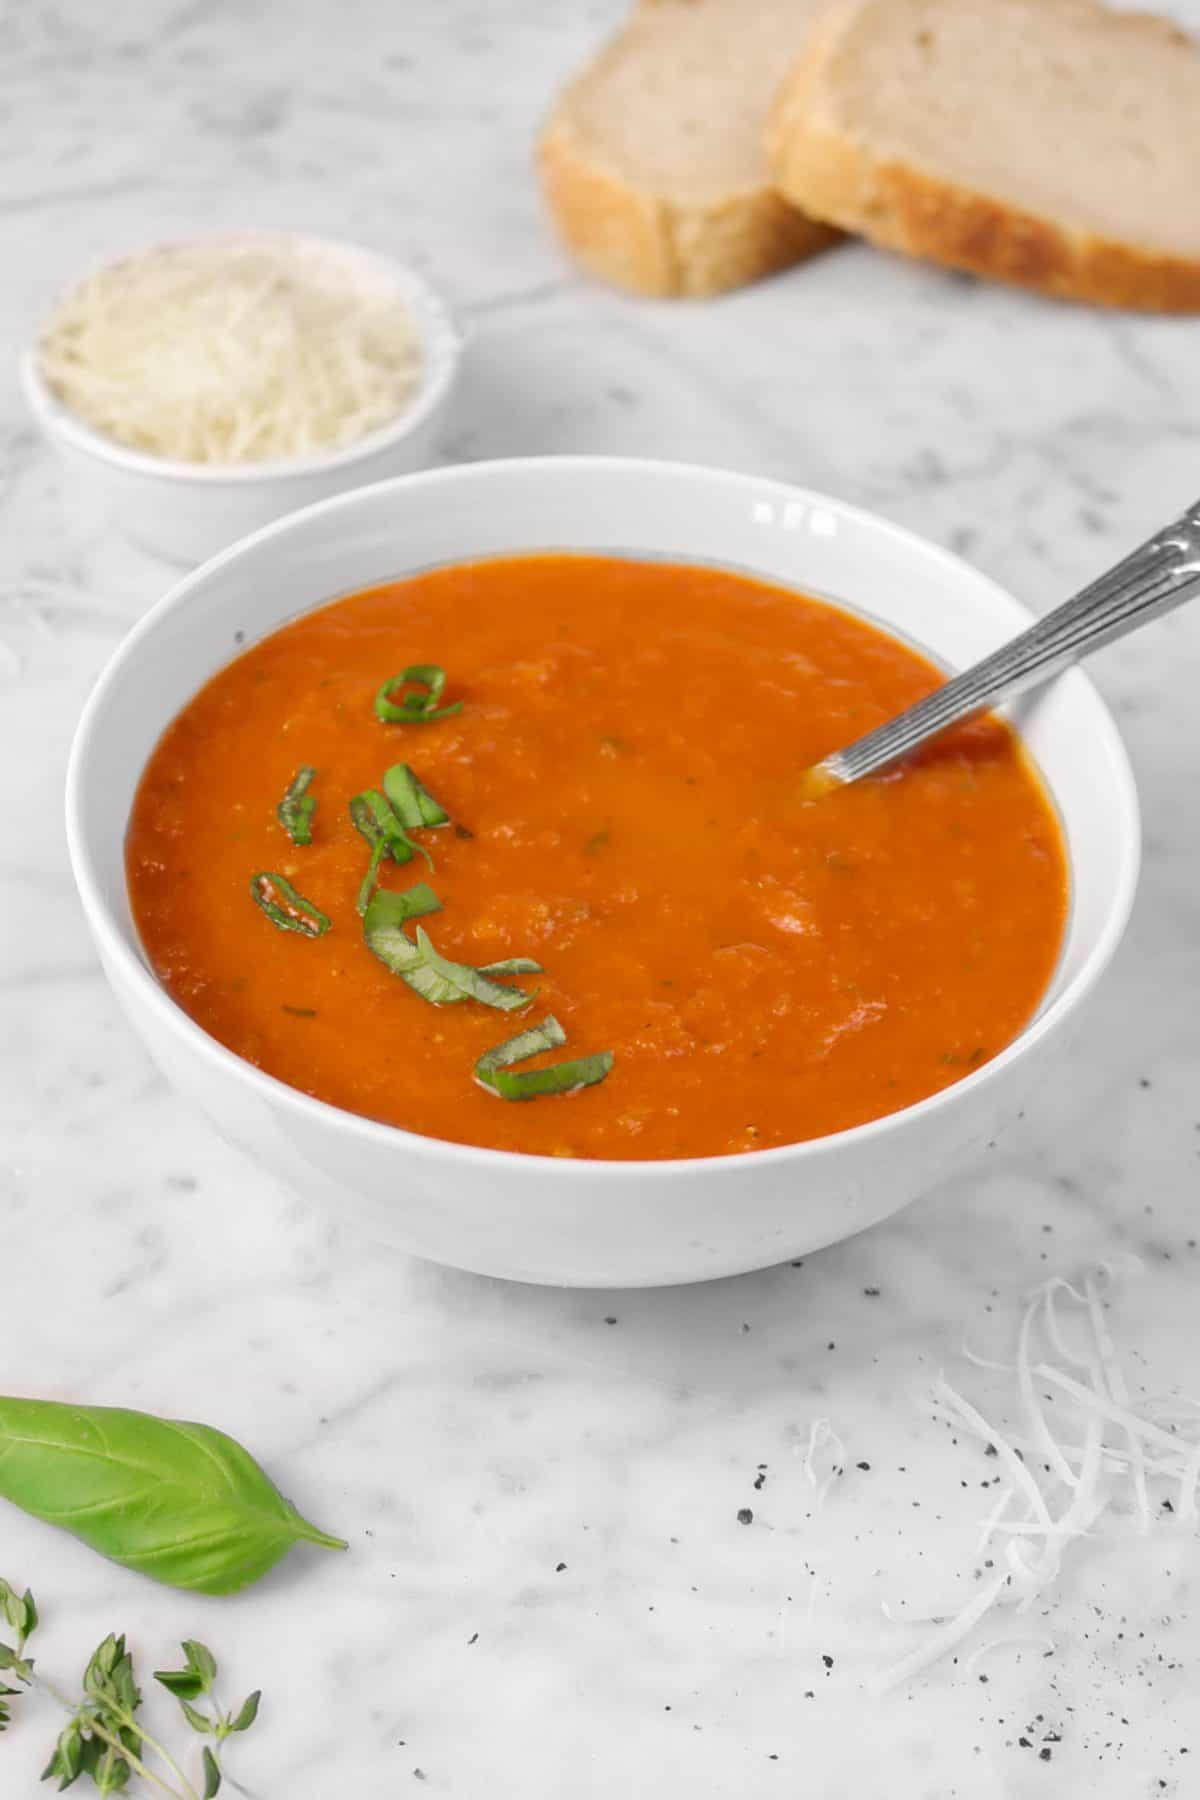 a bowl of tomato soup with a spoon on a marble counter with bread, grated cheese, and fresh herbs